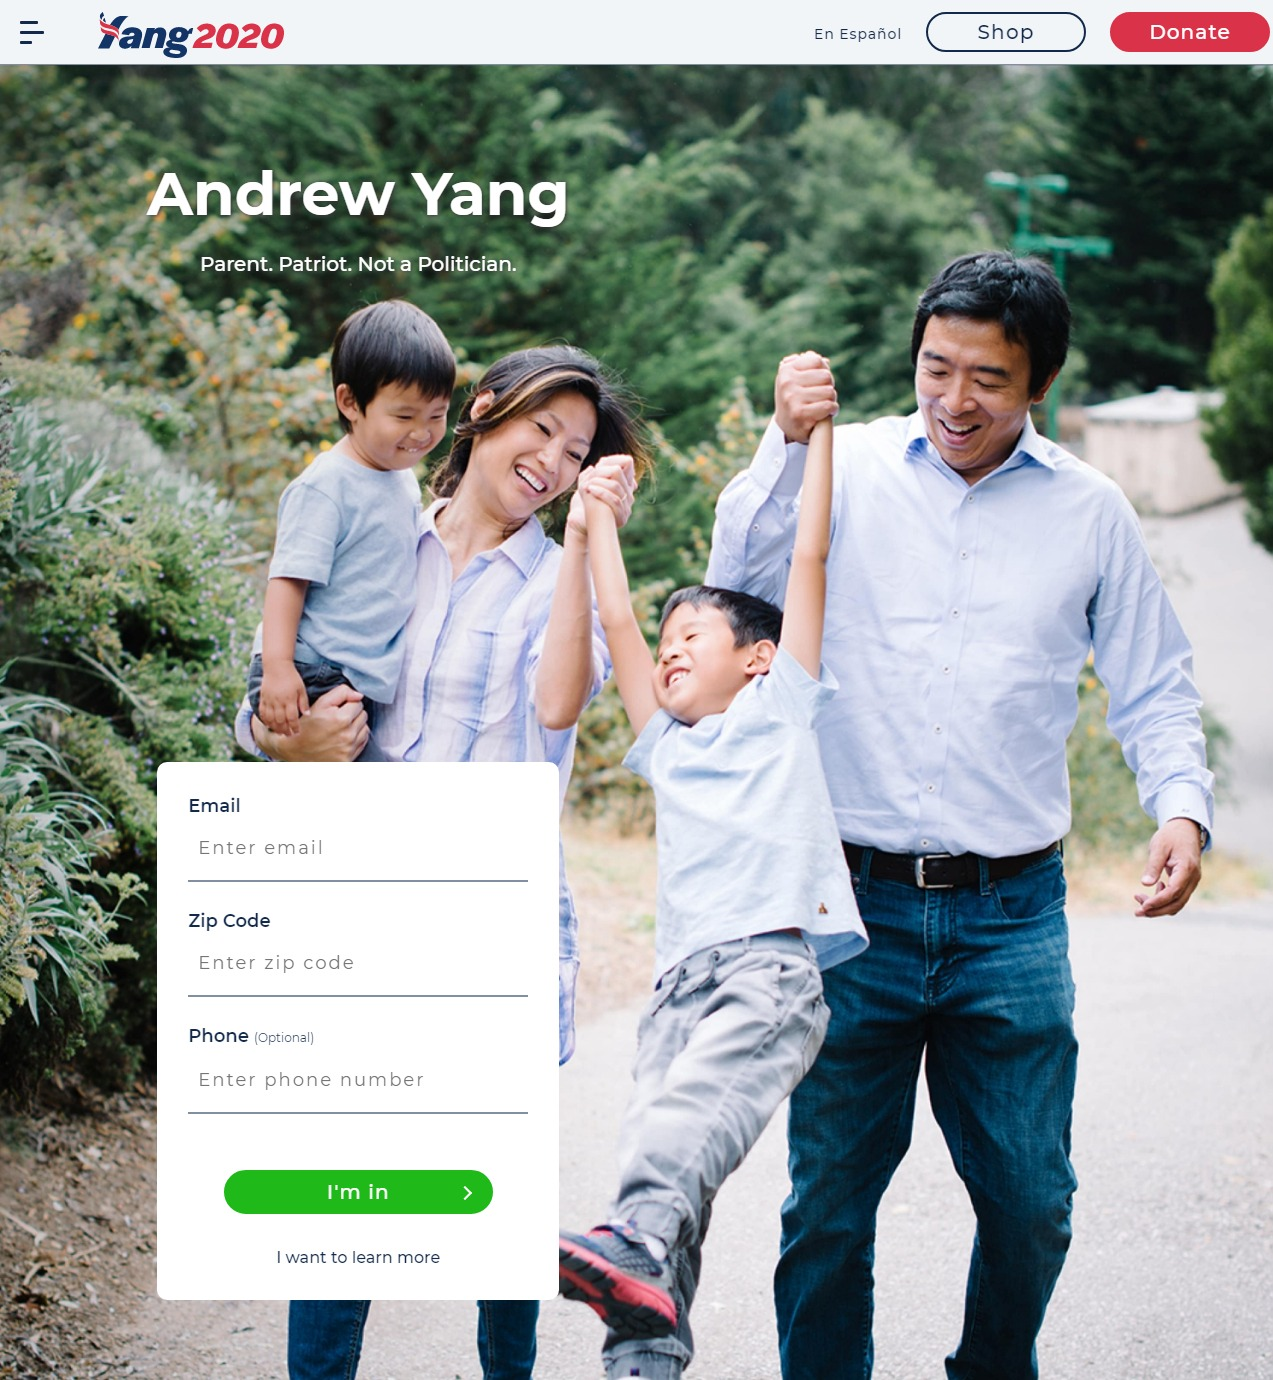 Homepage Snapshot for January 1, 2020: Businessperson Andrew Yang